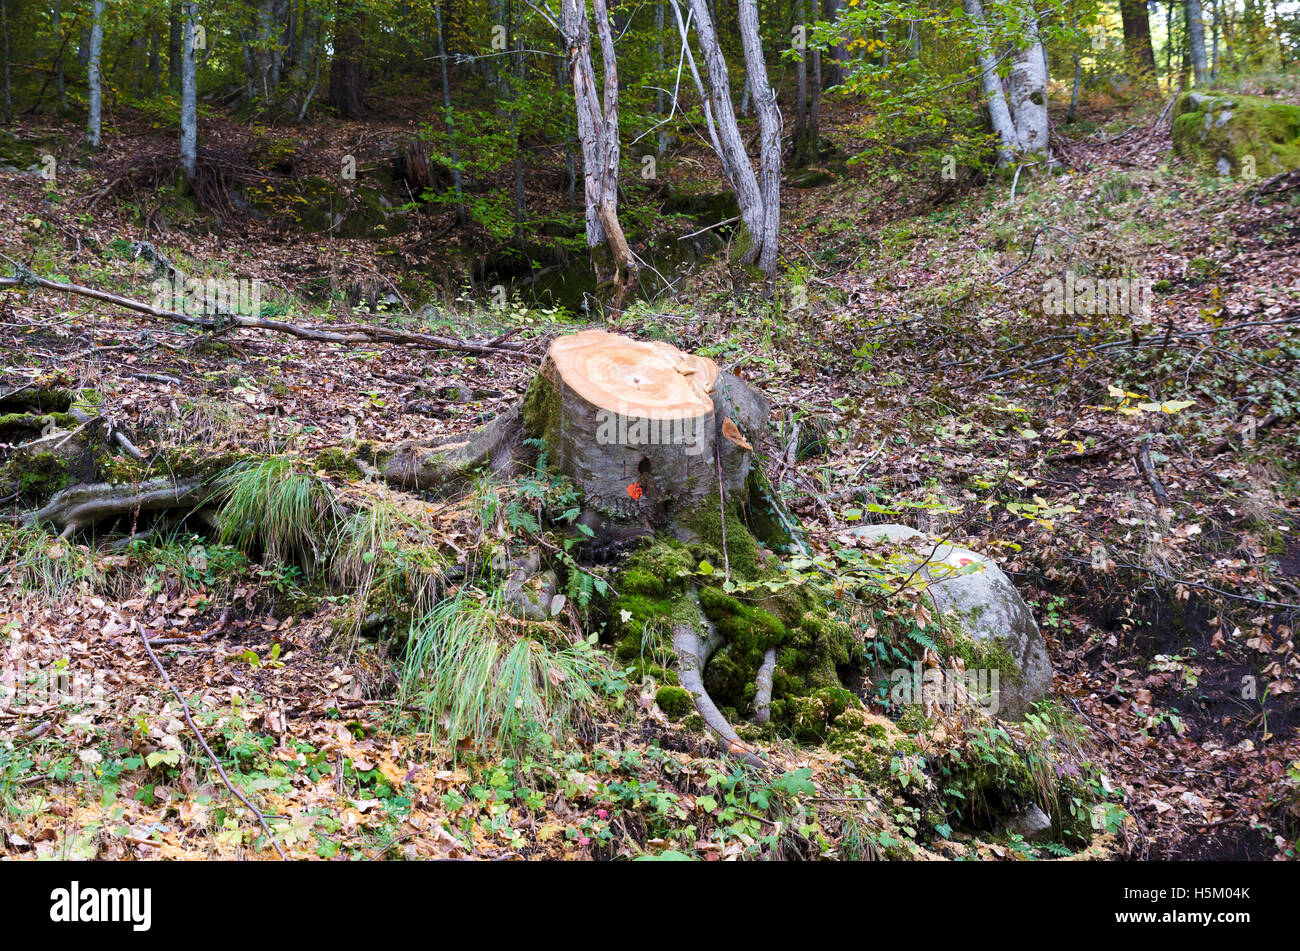 Cut tree in a wood. Lumber industry - Stock Image